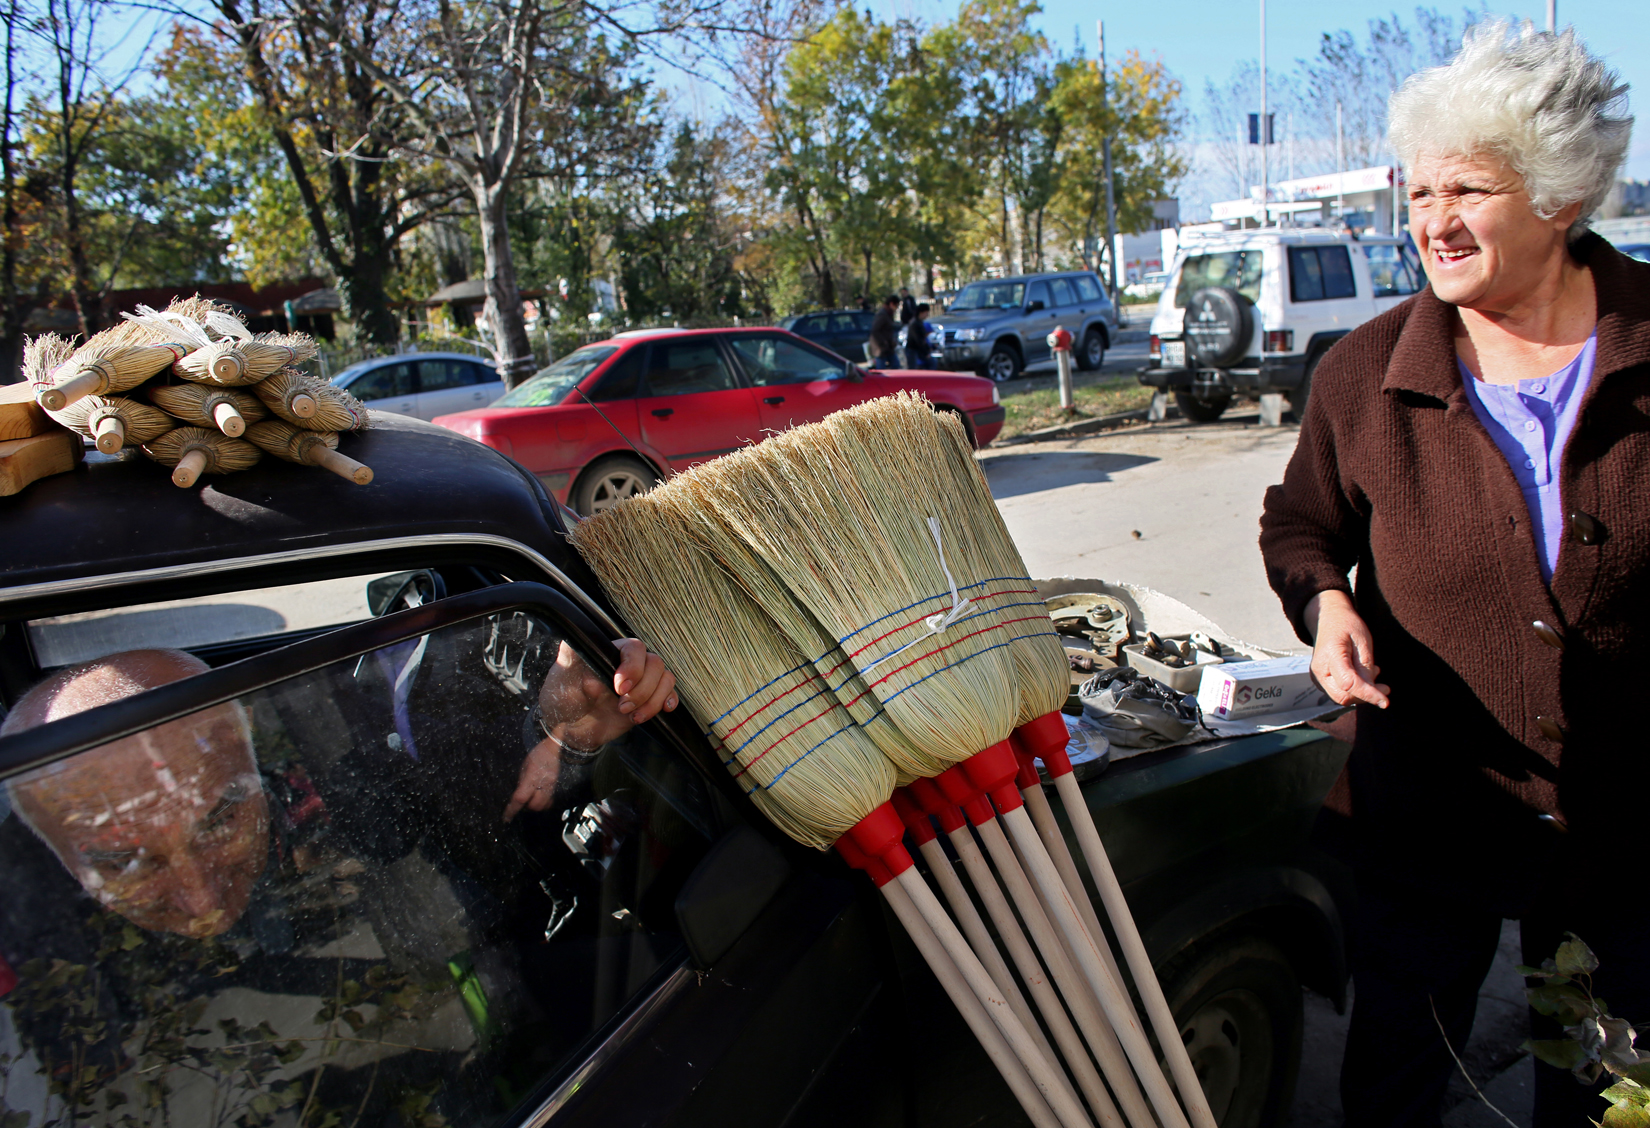 A man sells broomsticks from the roof of his car, near an outdoor market in Vidin, Bulgaria on October 18th, 2014. Many Bulgarians sell personal belongings, fruit and vegetables grown at home, or resell goods as a supplement to their primary earnings.